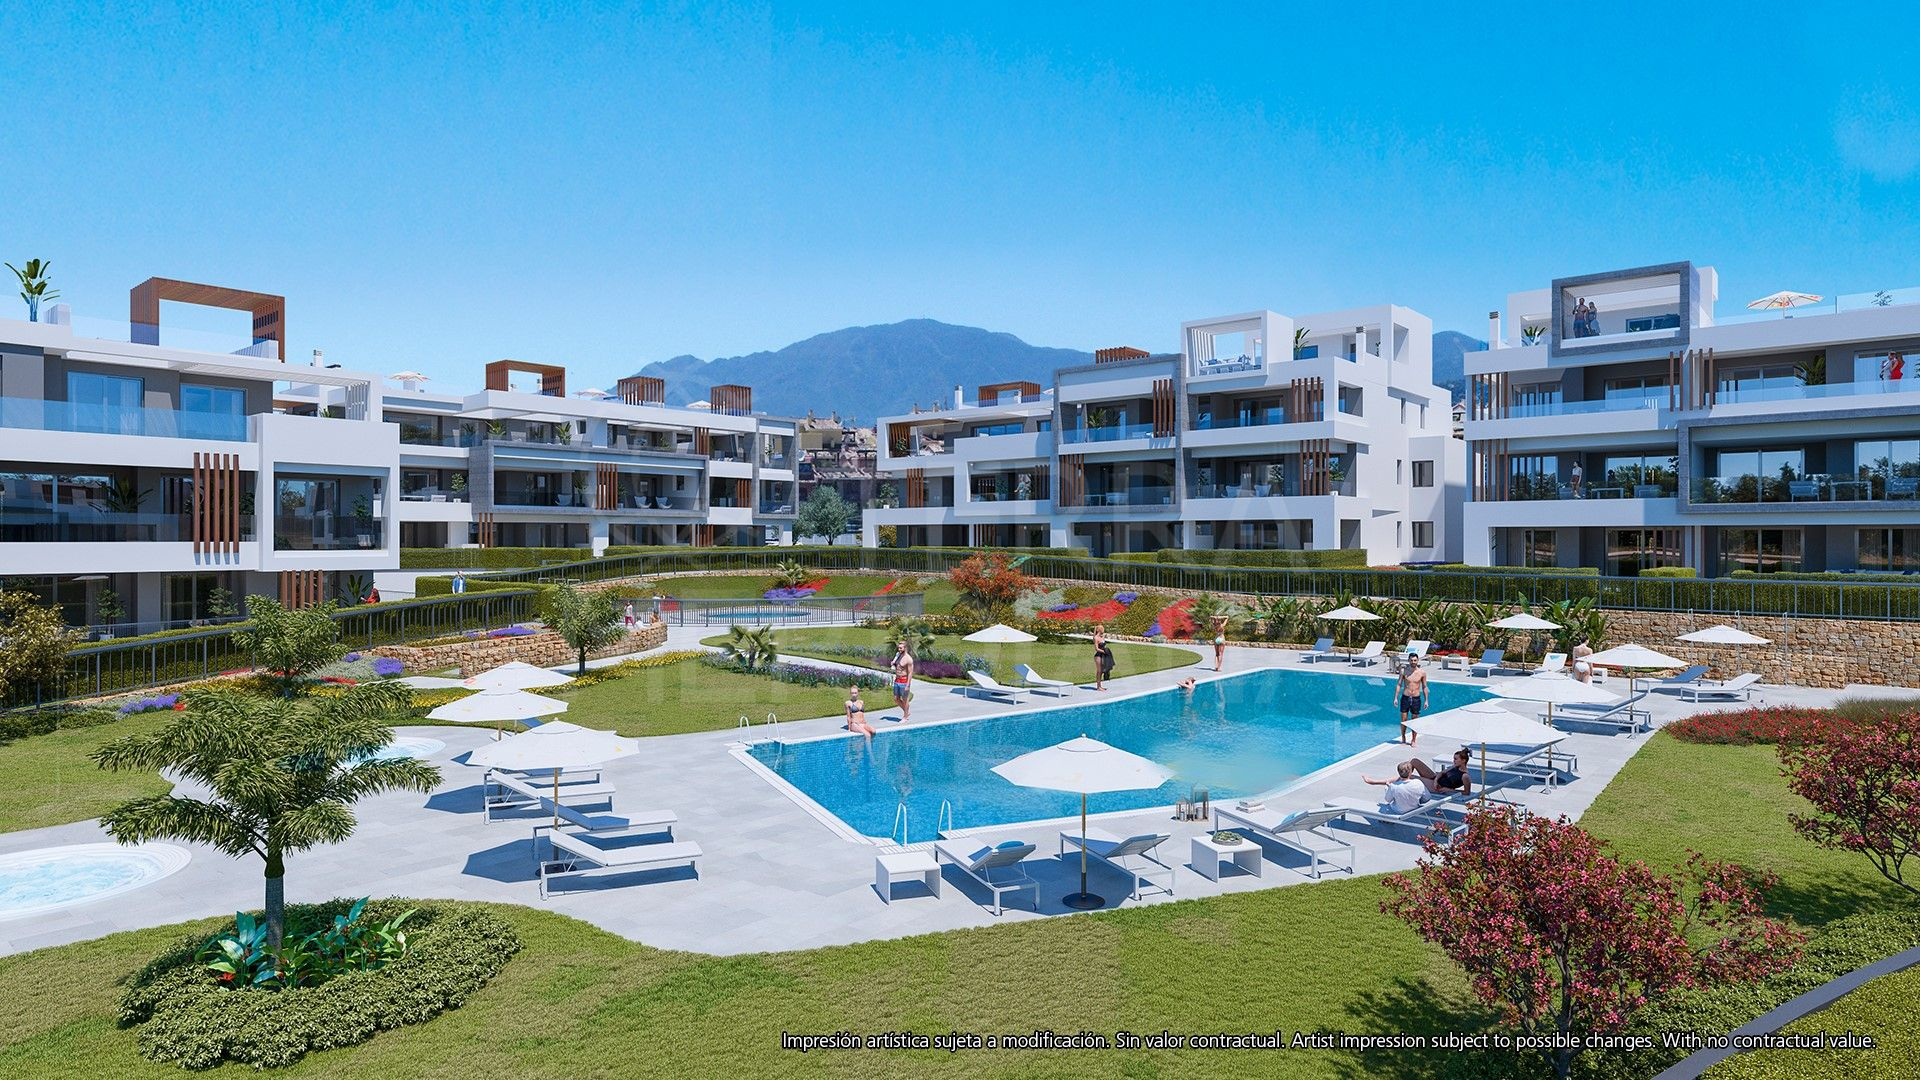 Chic off-plan first-floor apartment with a stylish modern interior for sale in Los Miradores del Sol, Estepona